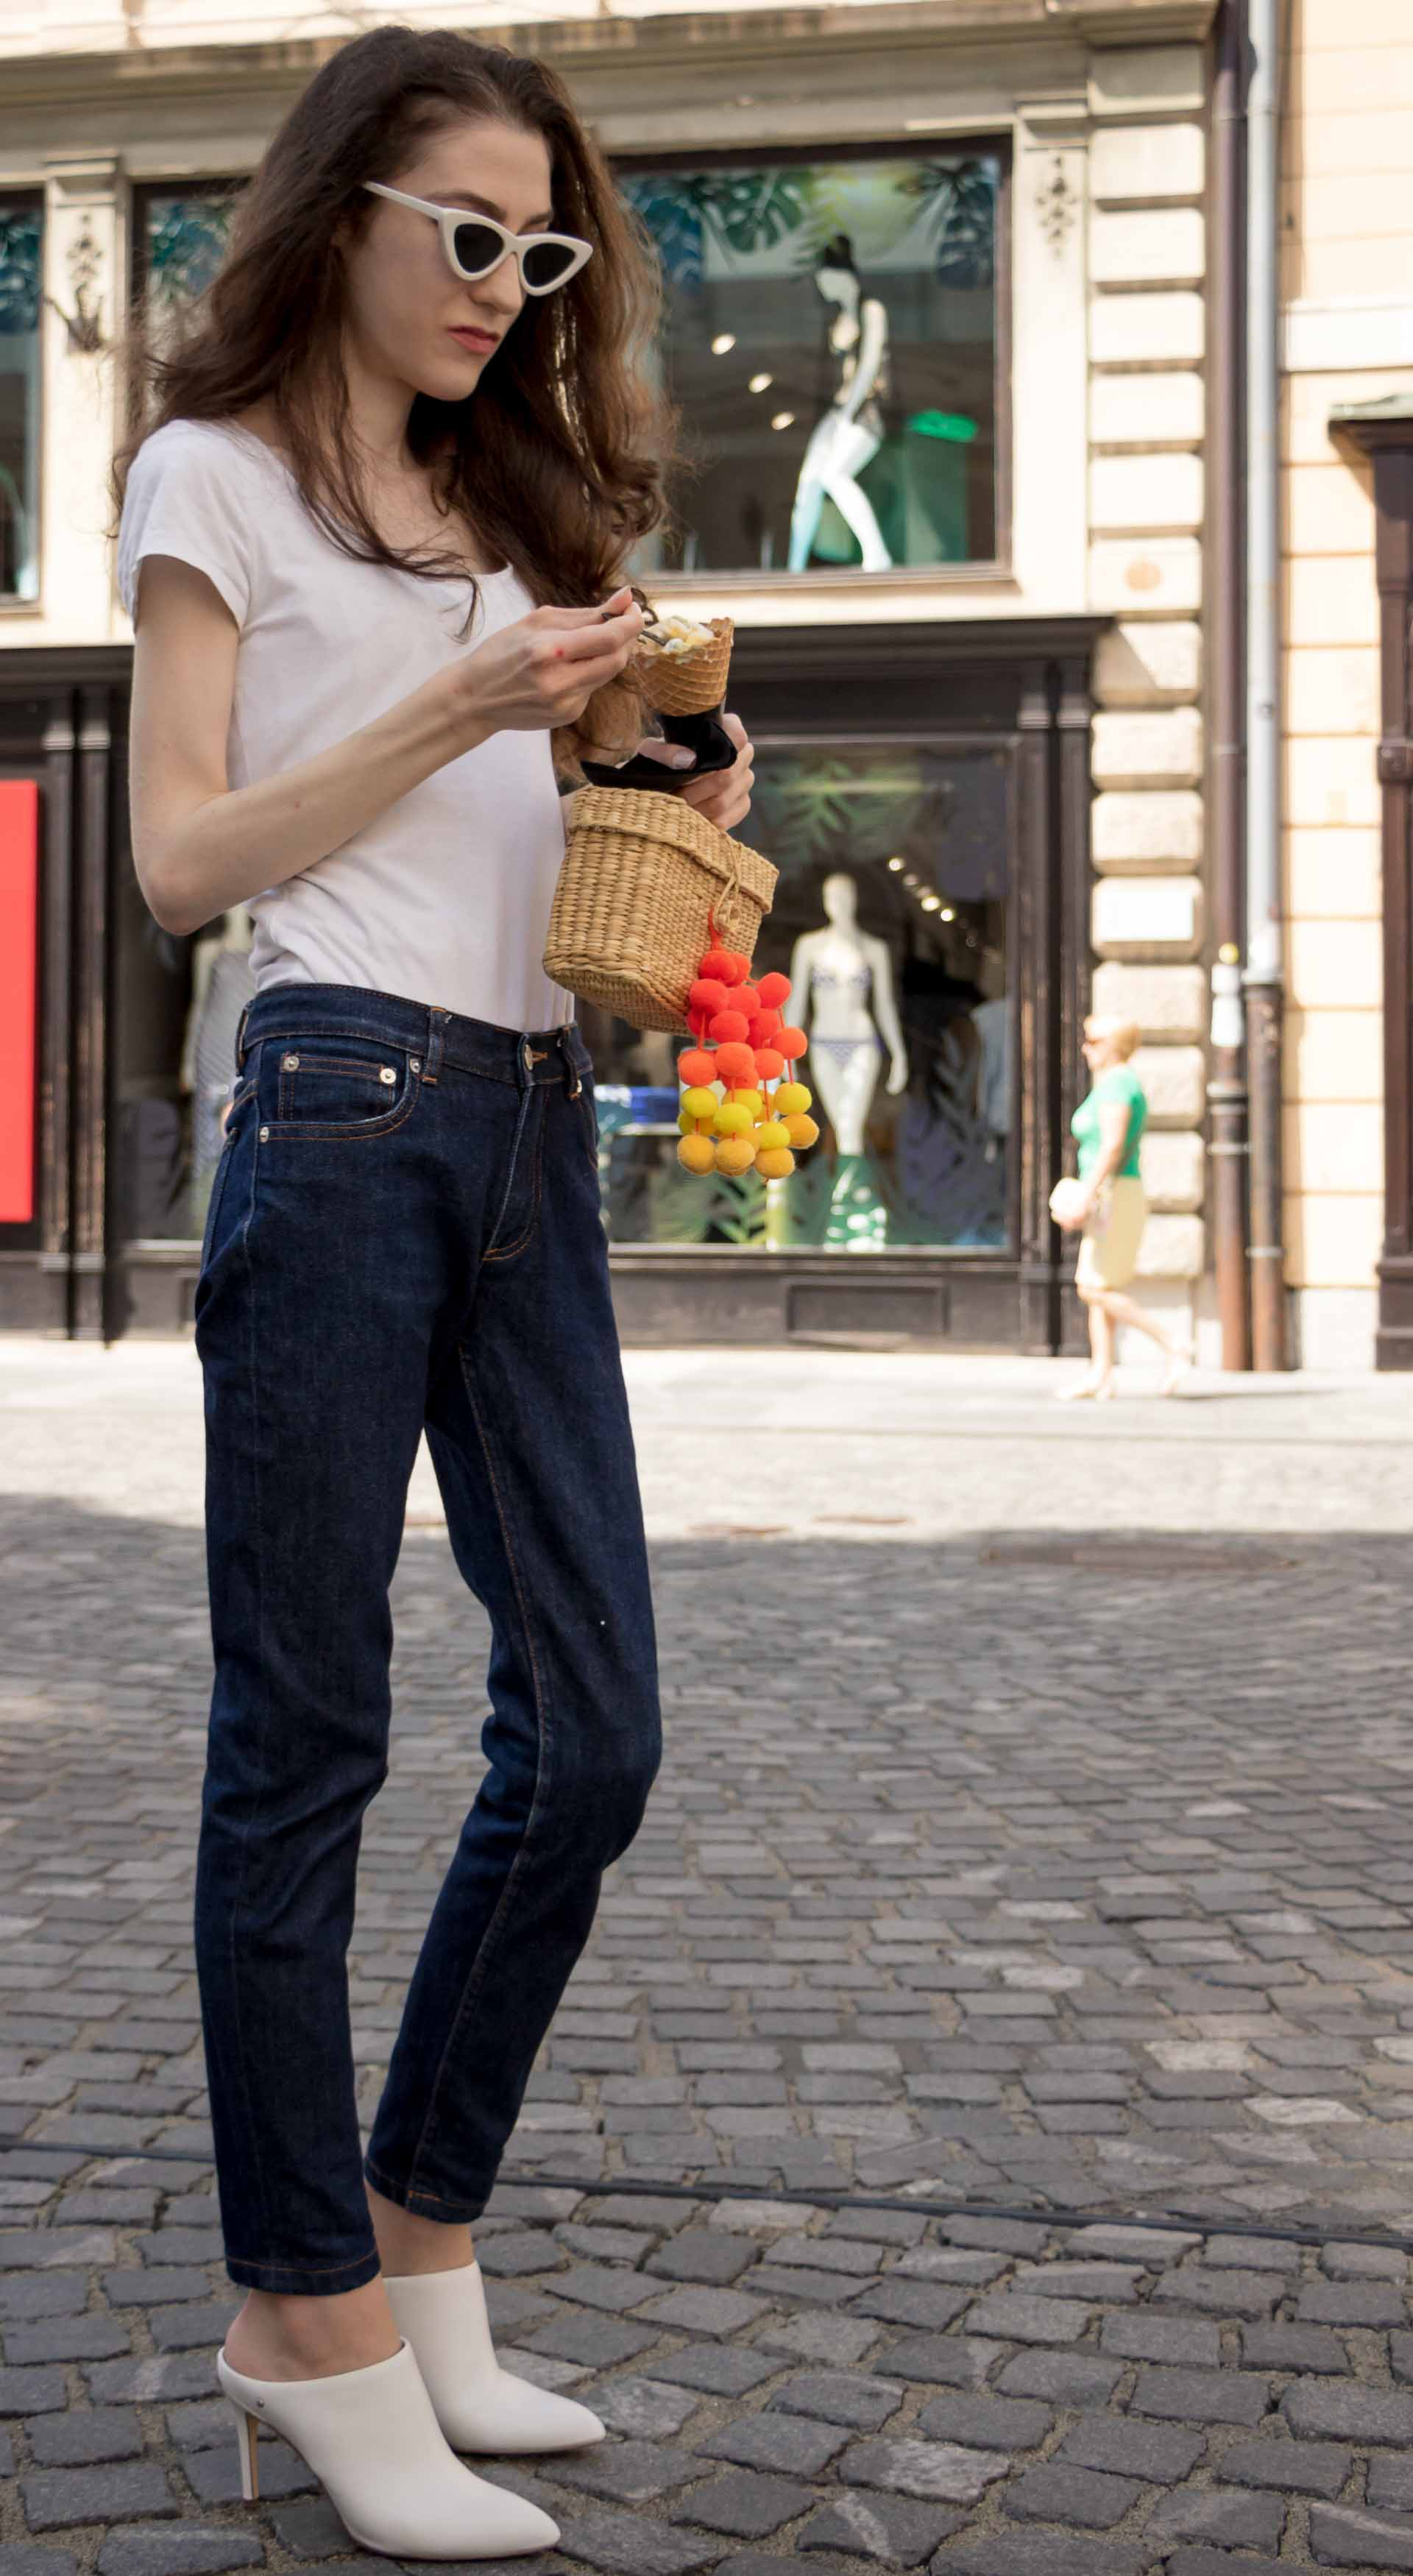 Veronika Lipar Fashion Editor of Brunette from Wall Street wearing dark blue tapered jeans from A.P.C., H&M white T-shirt, Nannacay basket bag, white mules and Adam Selman x Le Specs white cat eye Lolita sunglasses on the street eating ice cream